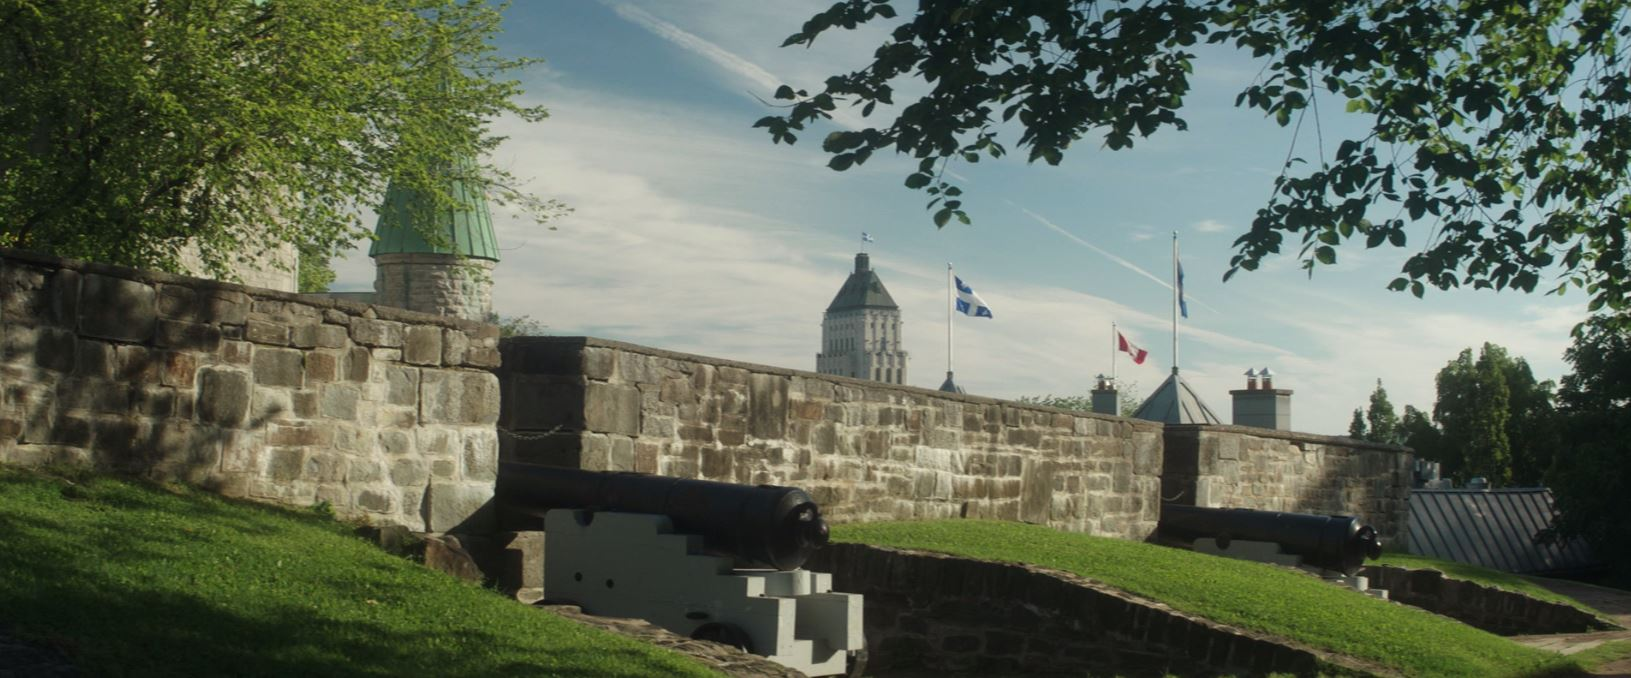 Parks Canada, Guardian of the Fortifications of Québec - For centuries, these walls have protected us at time of conflict. Today, it is our turn to protect, maintain and restore them for the generations to come.